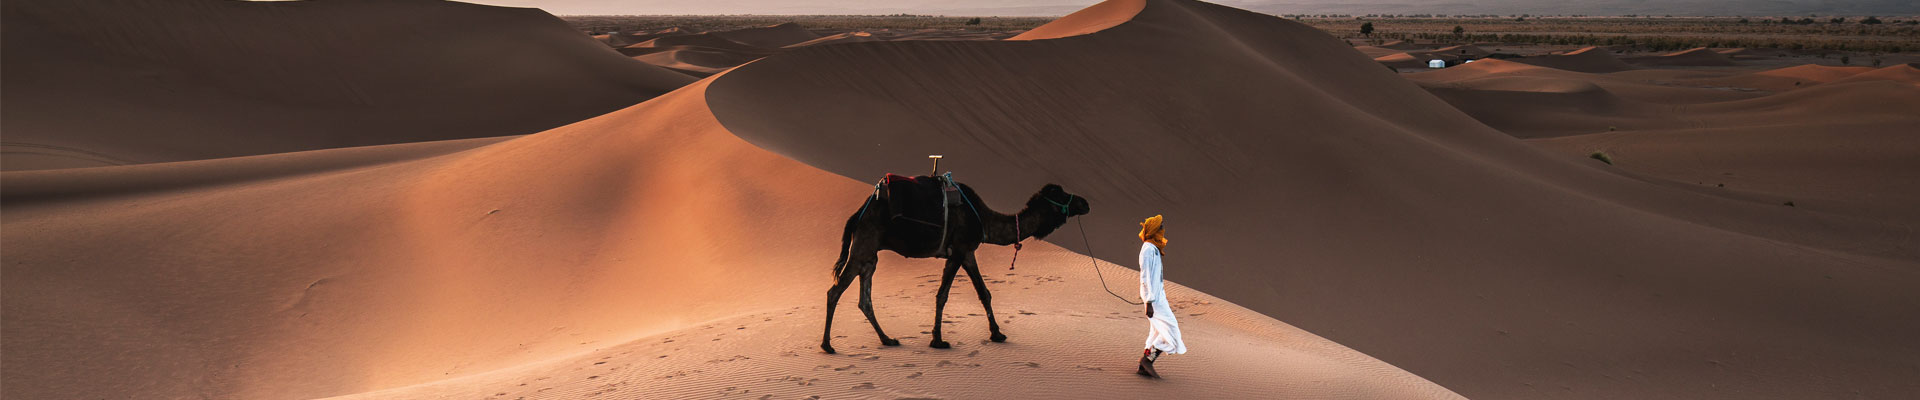 A person walking a camel in the desert